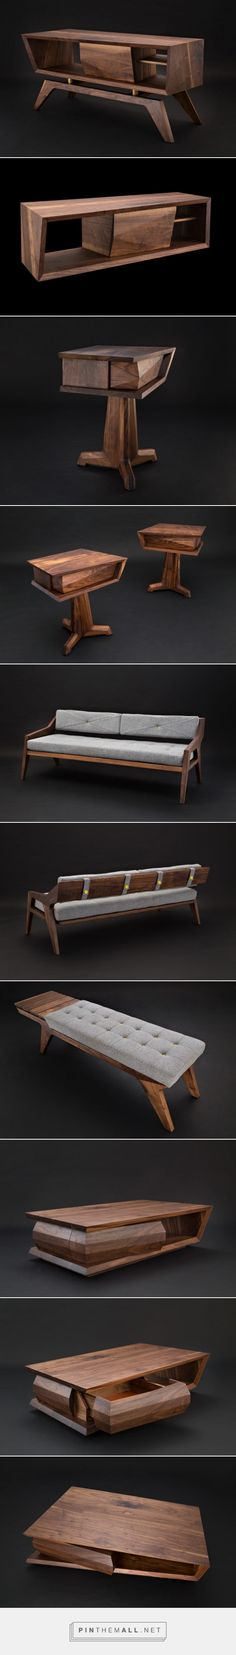 Arkwright Collection by Jory Brigham - Design Milk - created via http://pinthemall.net